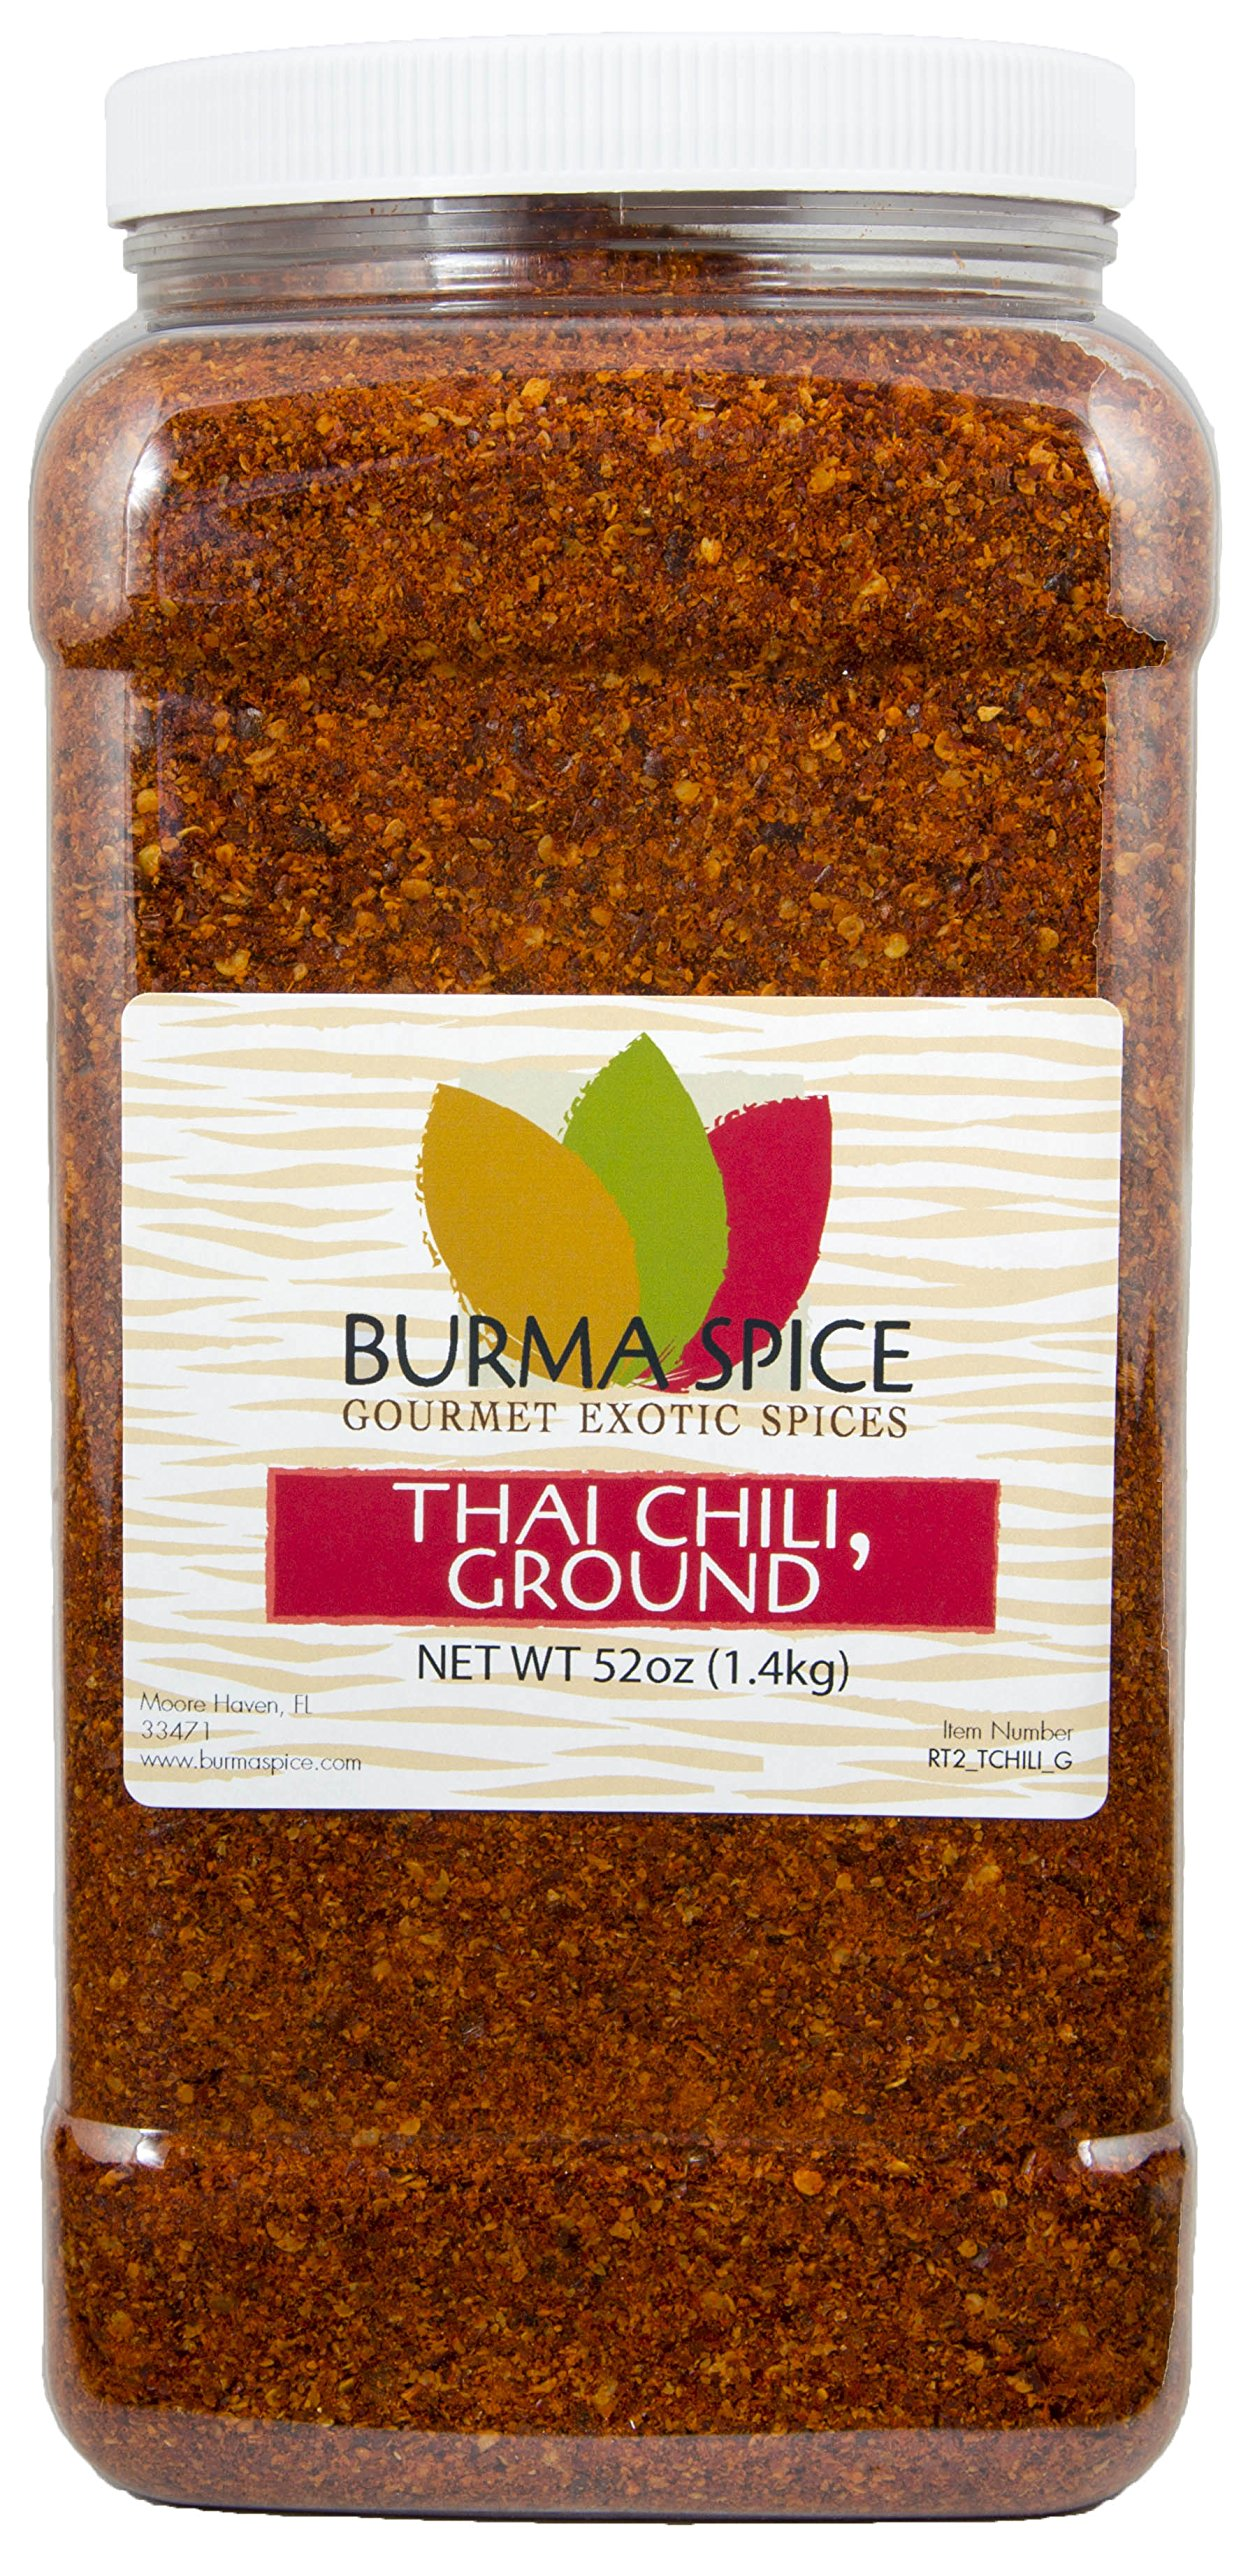 Ground Thai chili l Kosher dried crushed spice l 52 Ounces l ideal for Gochujang and South Asian recipes